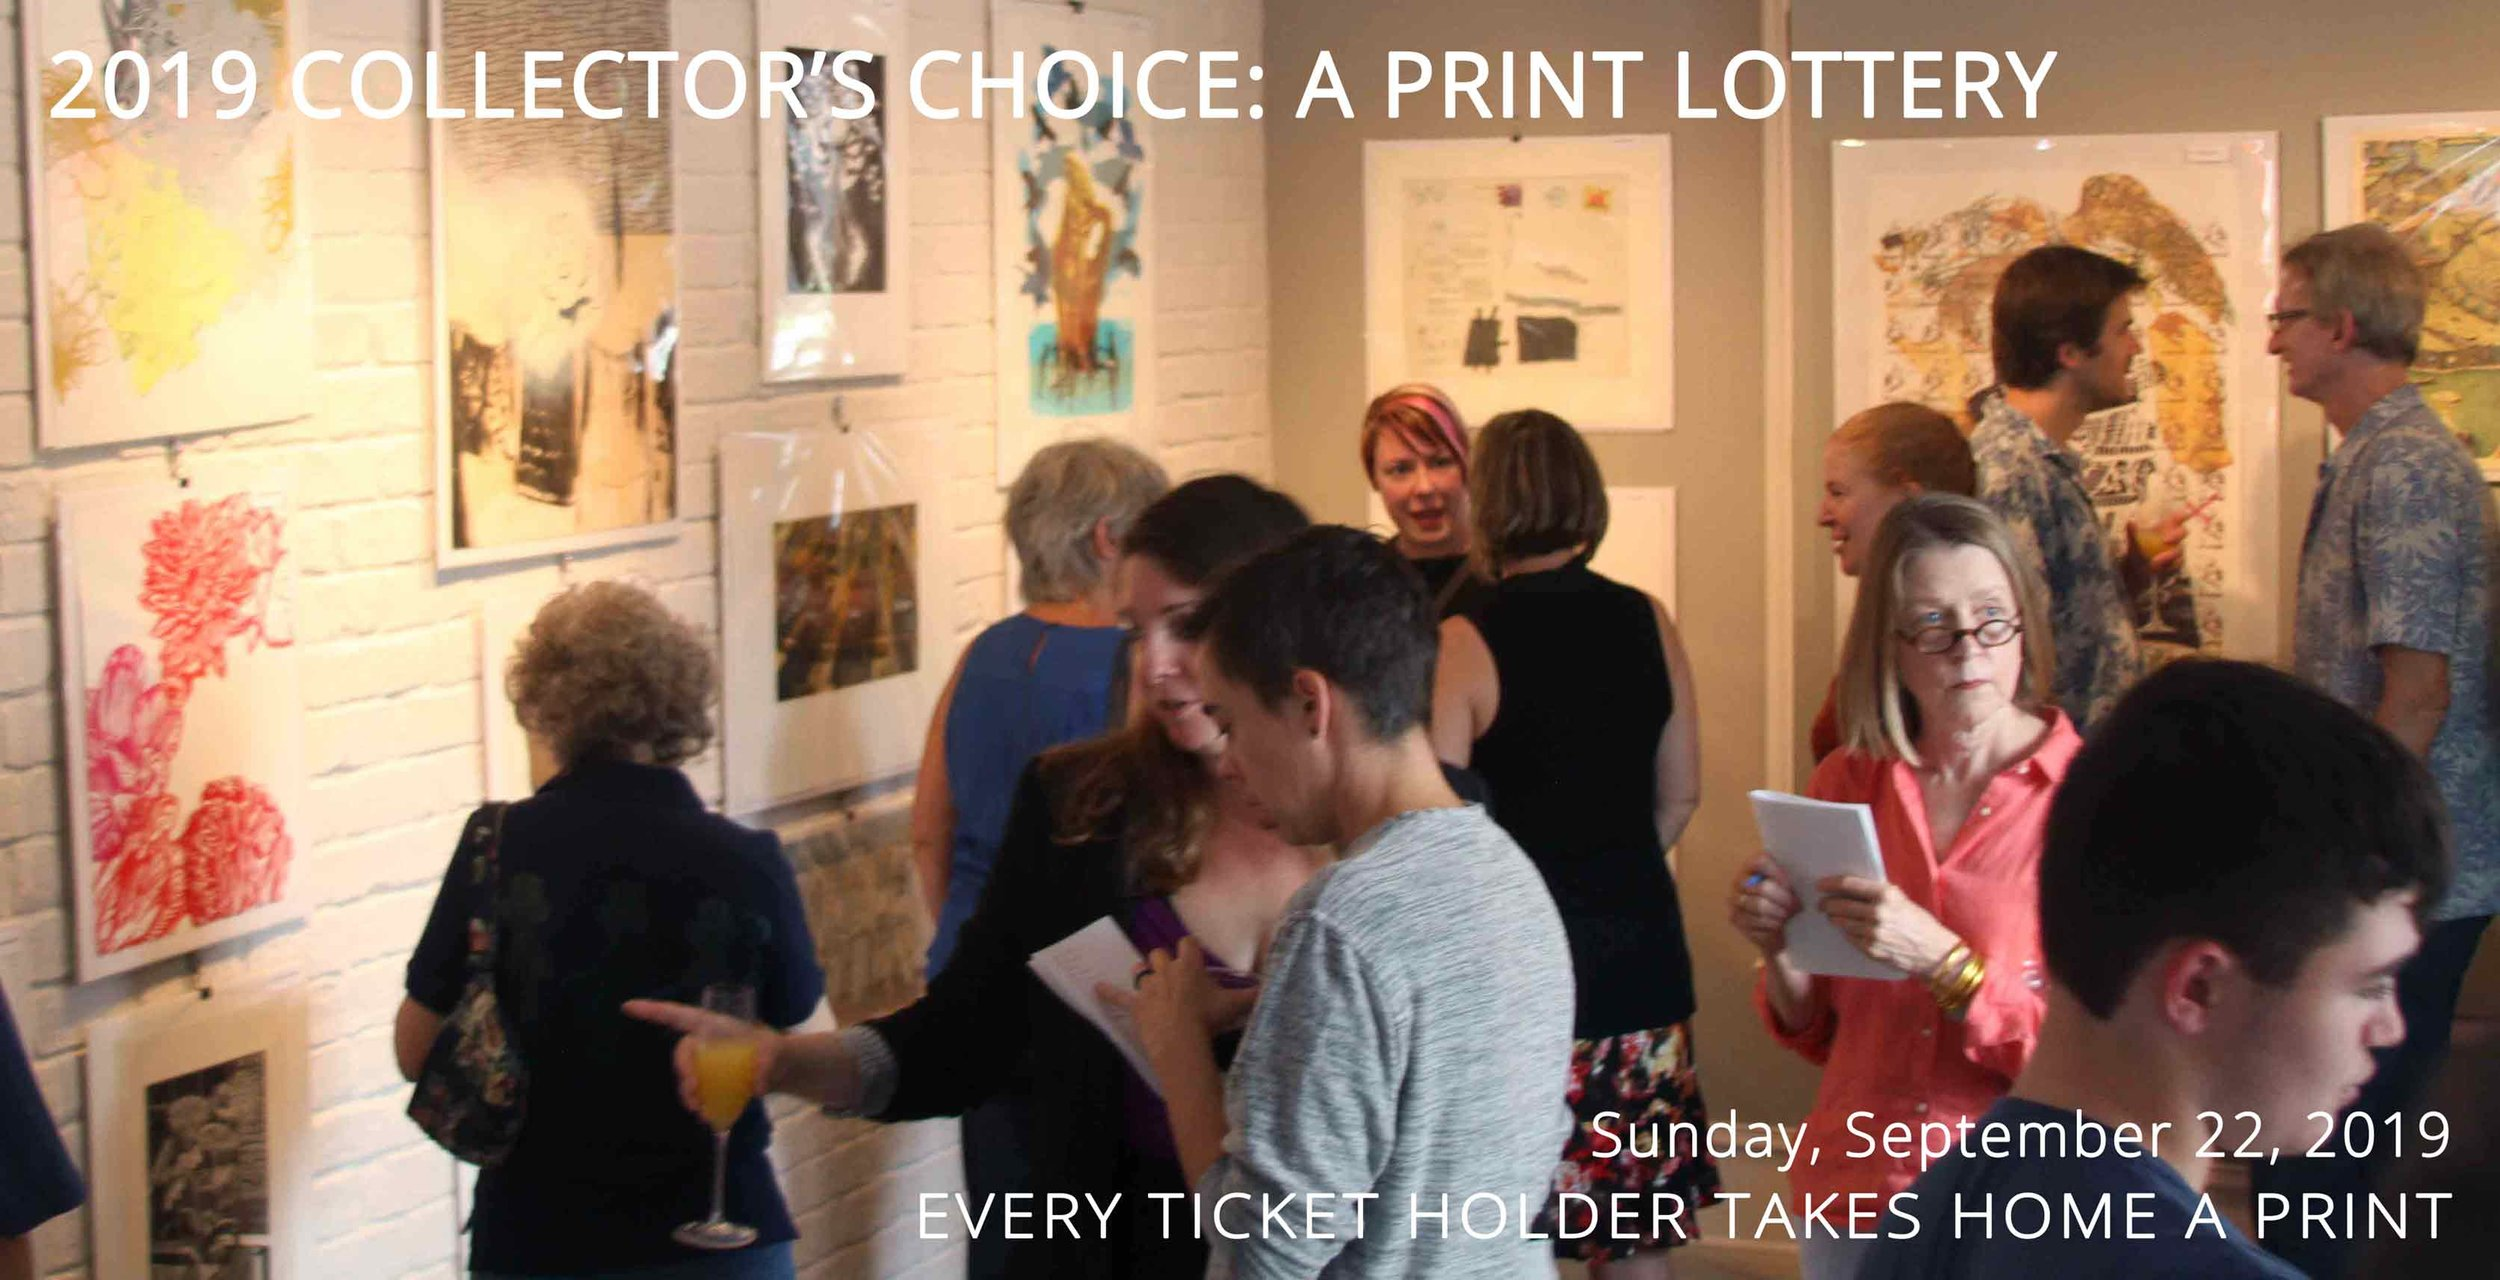 THANK YOU! - For support the Atlanta Printmakers Studio by entering the Collector's Choice Print Lottery!